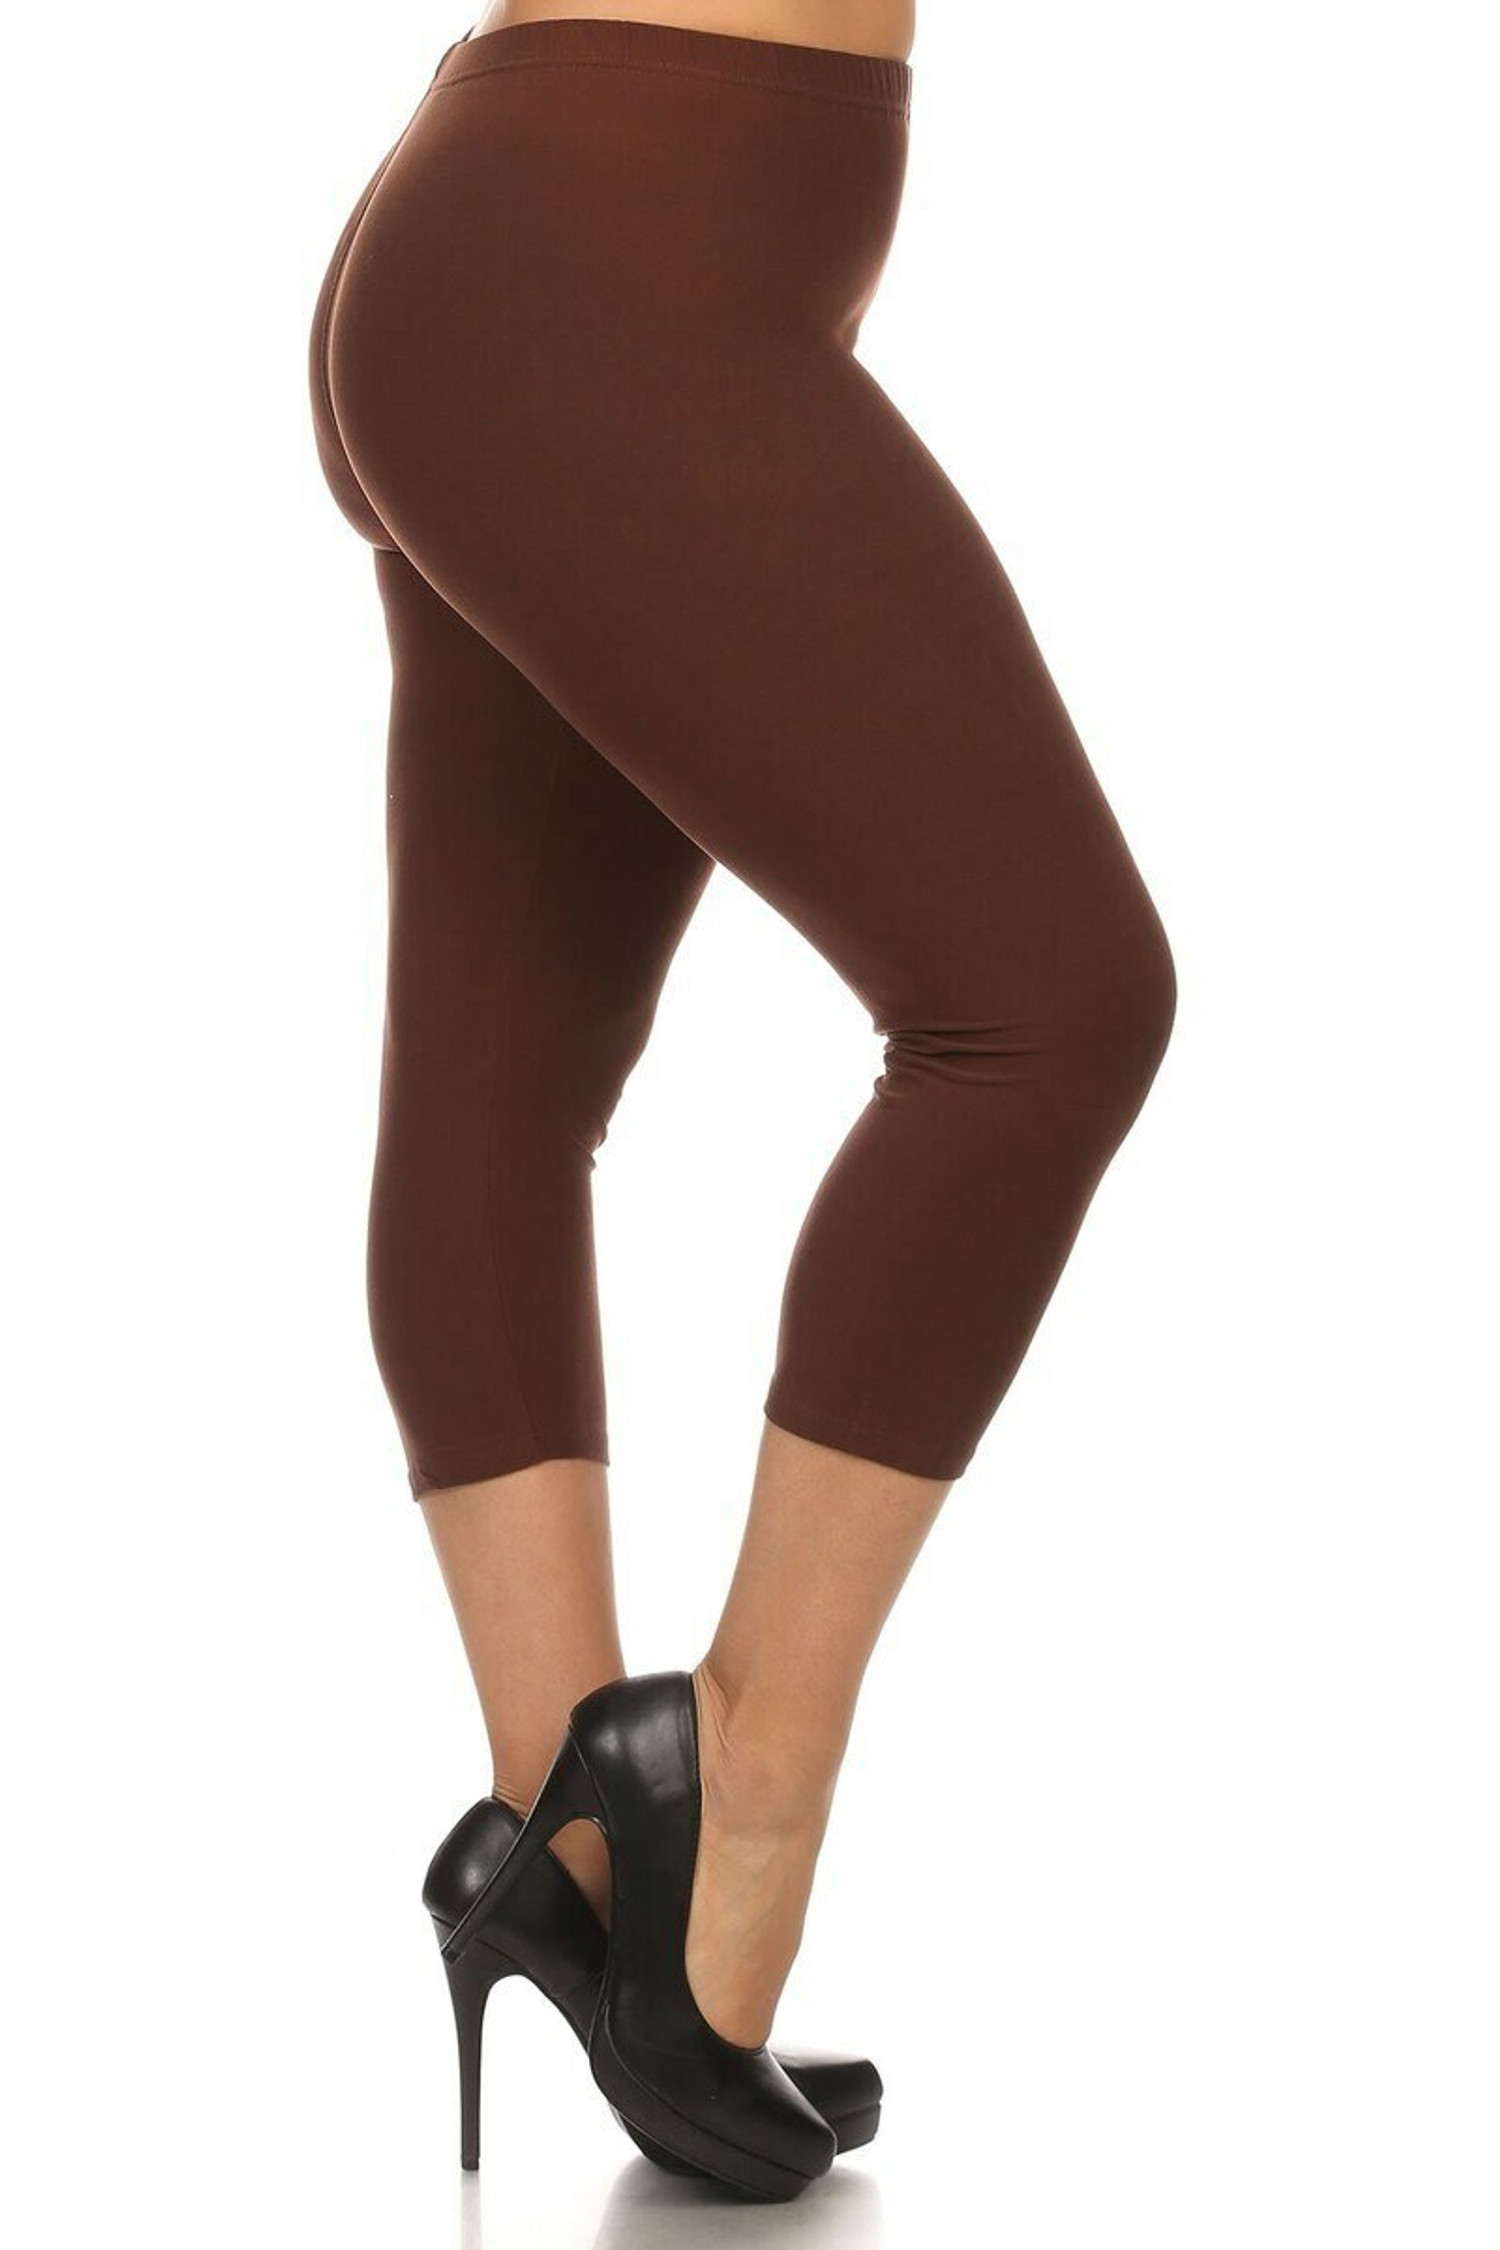 Right side view of Brown Buttery Soft Basic Solid Extra Plus Size Capris - 3X-5X - New Mix